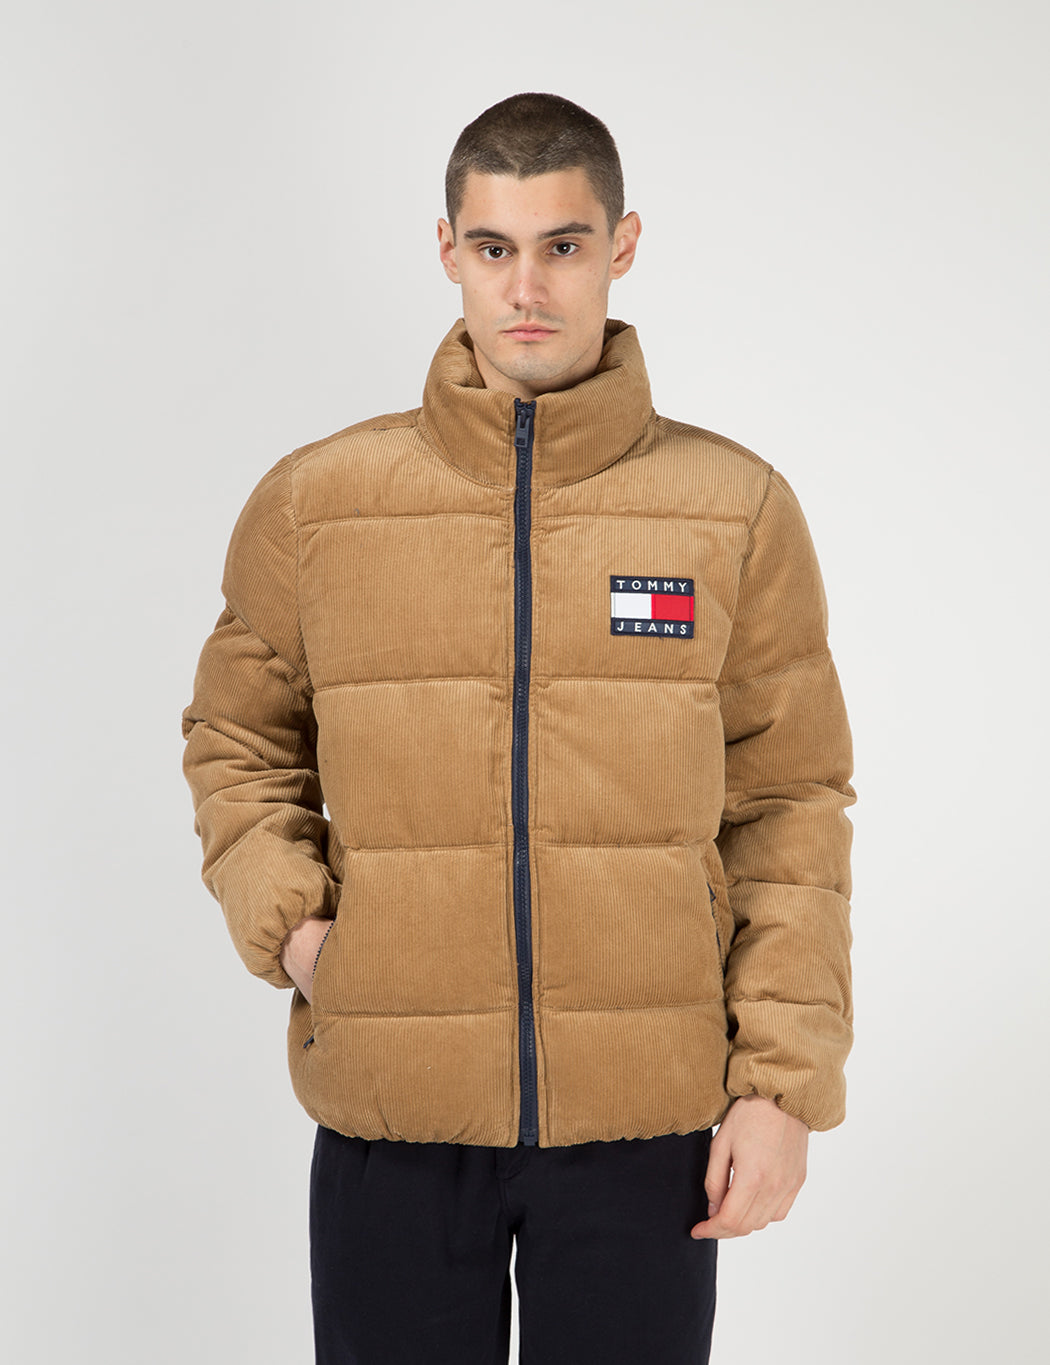 Tommy Jeans Corduroy Puffa Jacket - Tigers Eye | URBAN EXCESS.